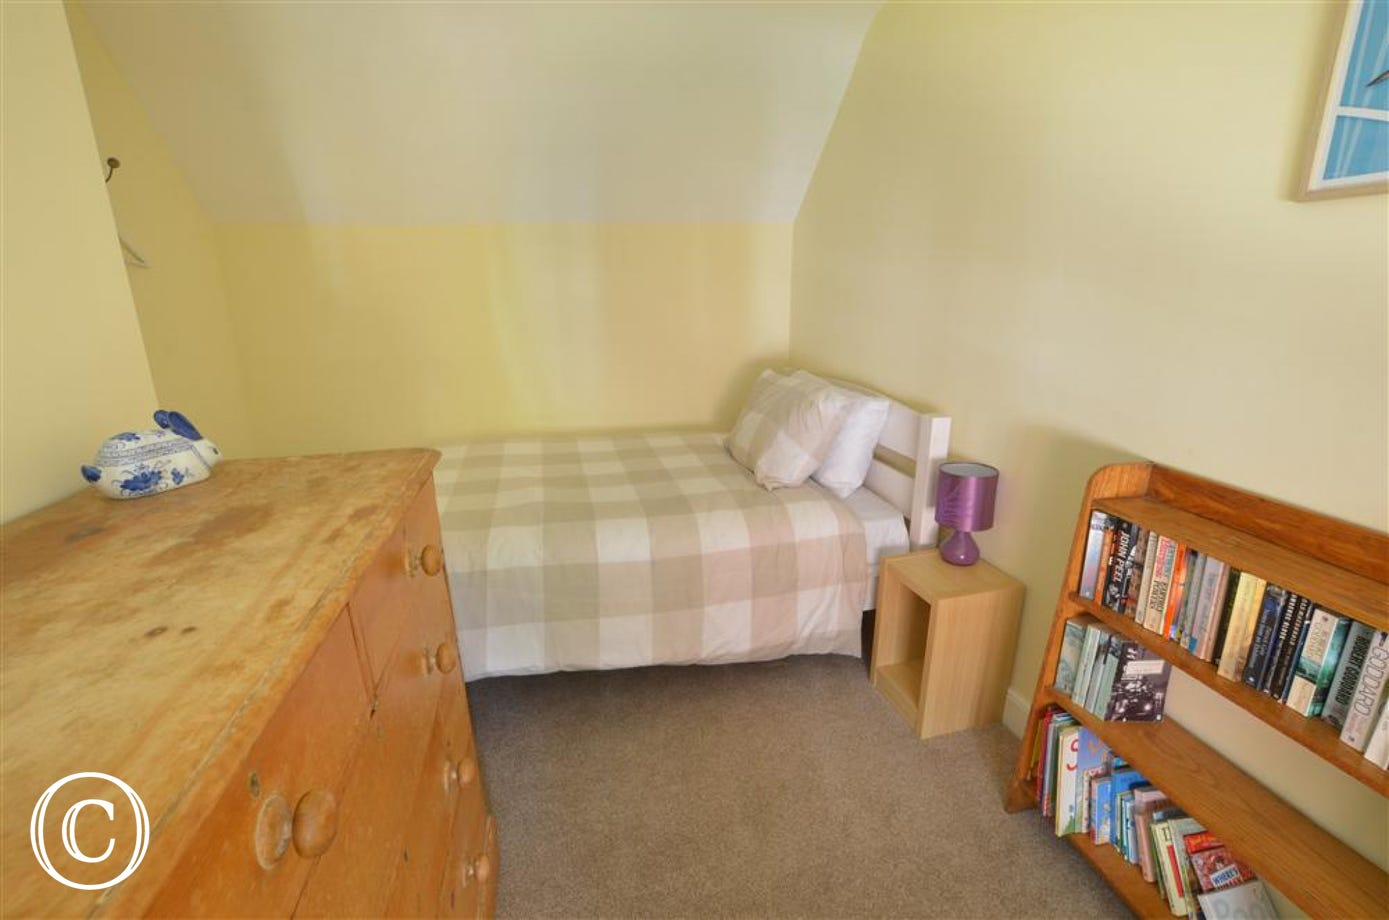 View of bedroom 3 with single bed, book shelf and chest of drawers.